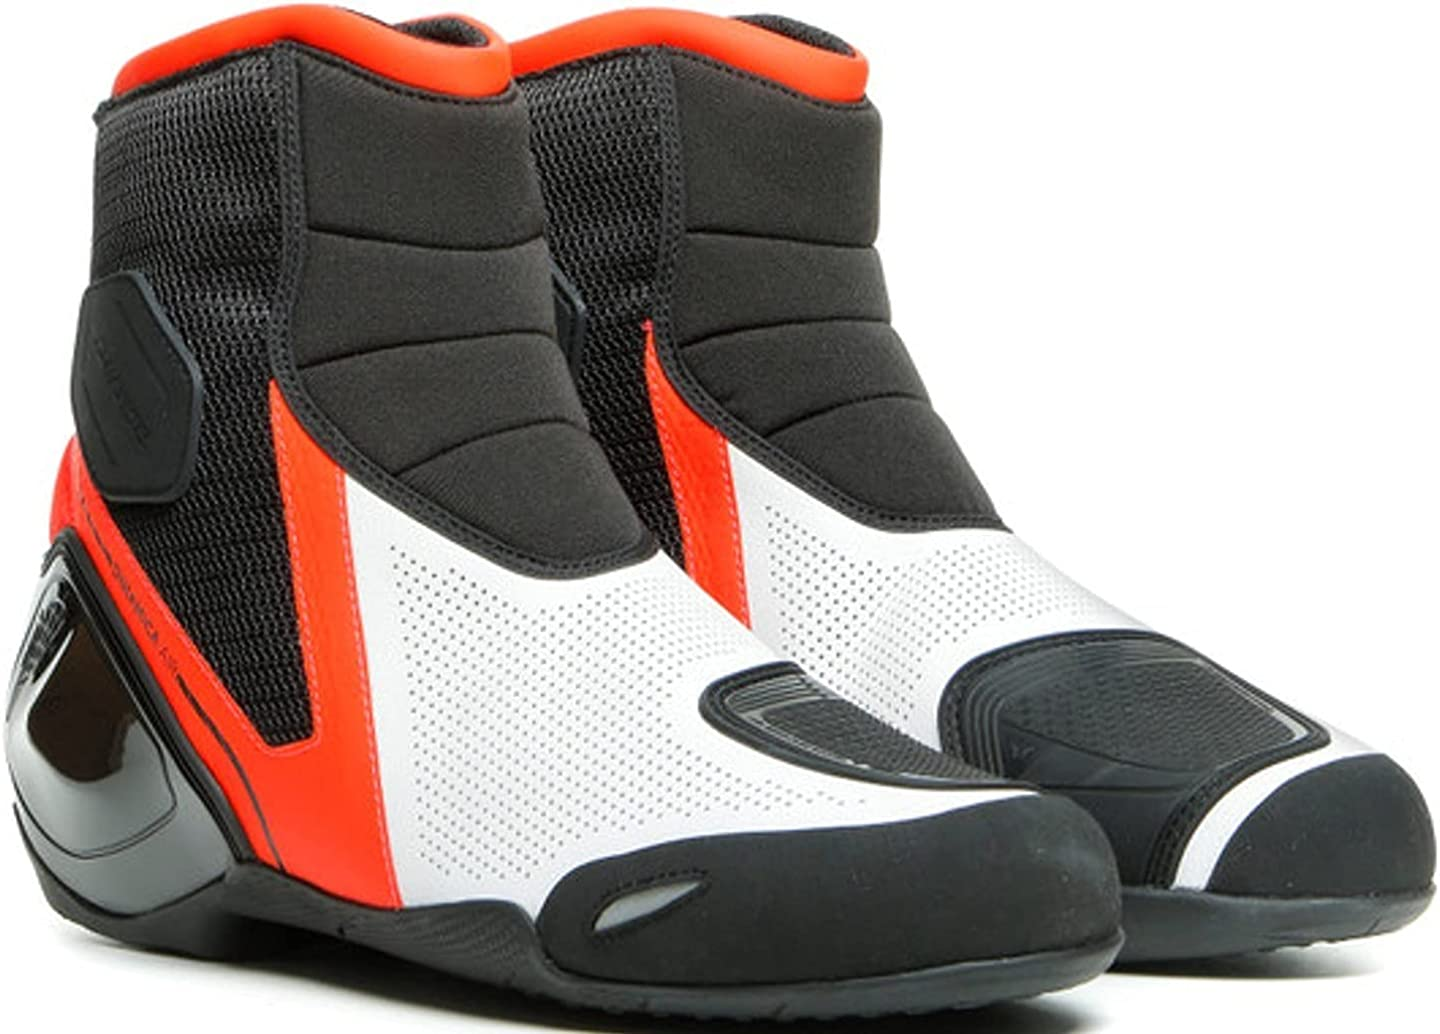 Jacksonville Mall free shipping Dainese Dinamica Air